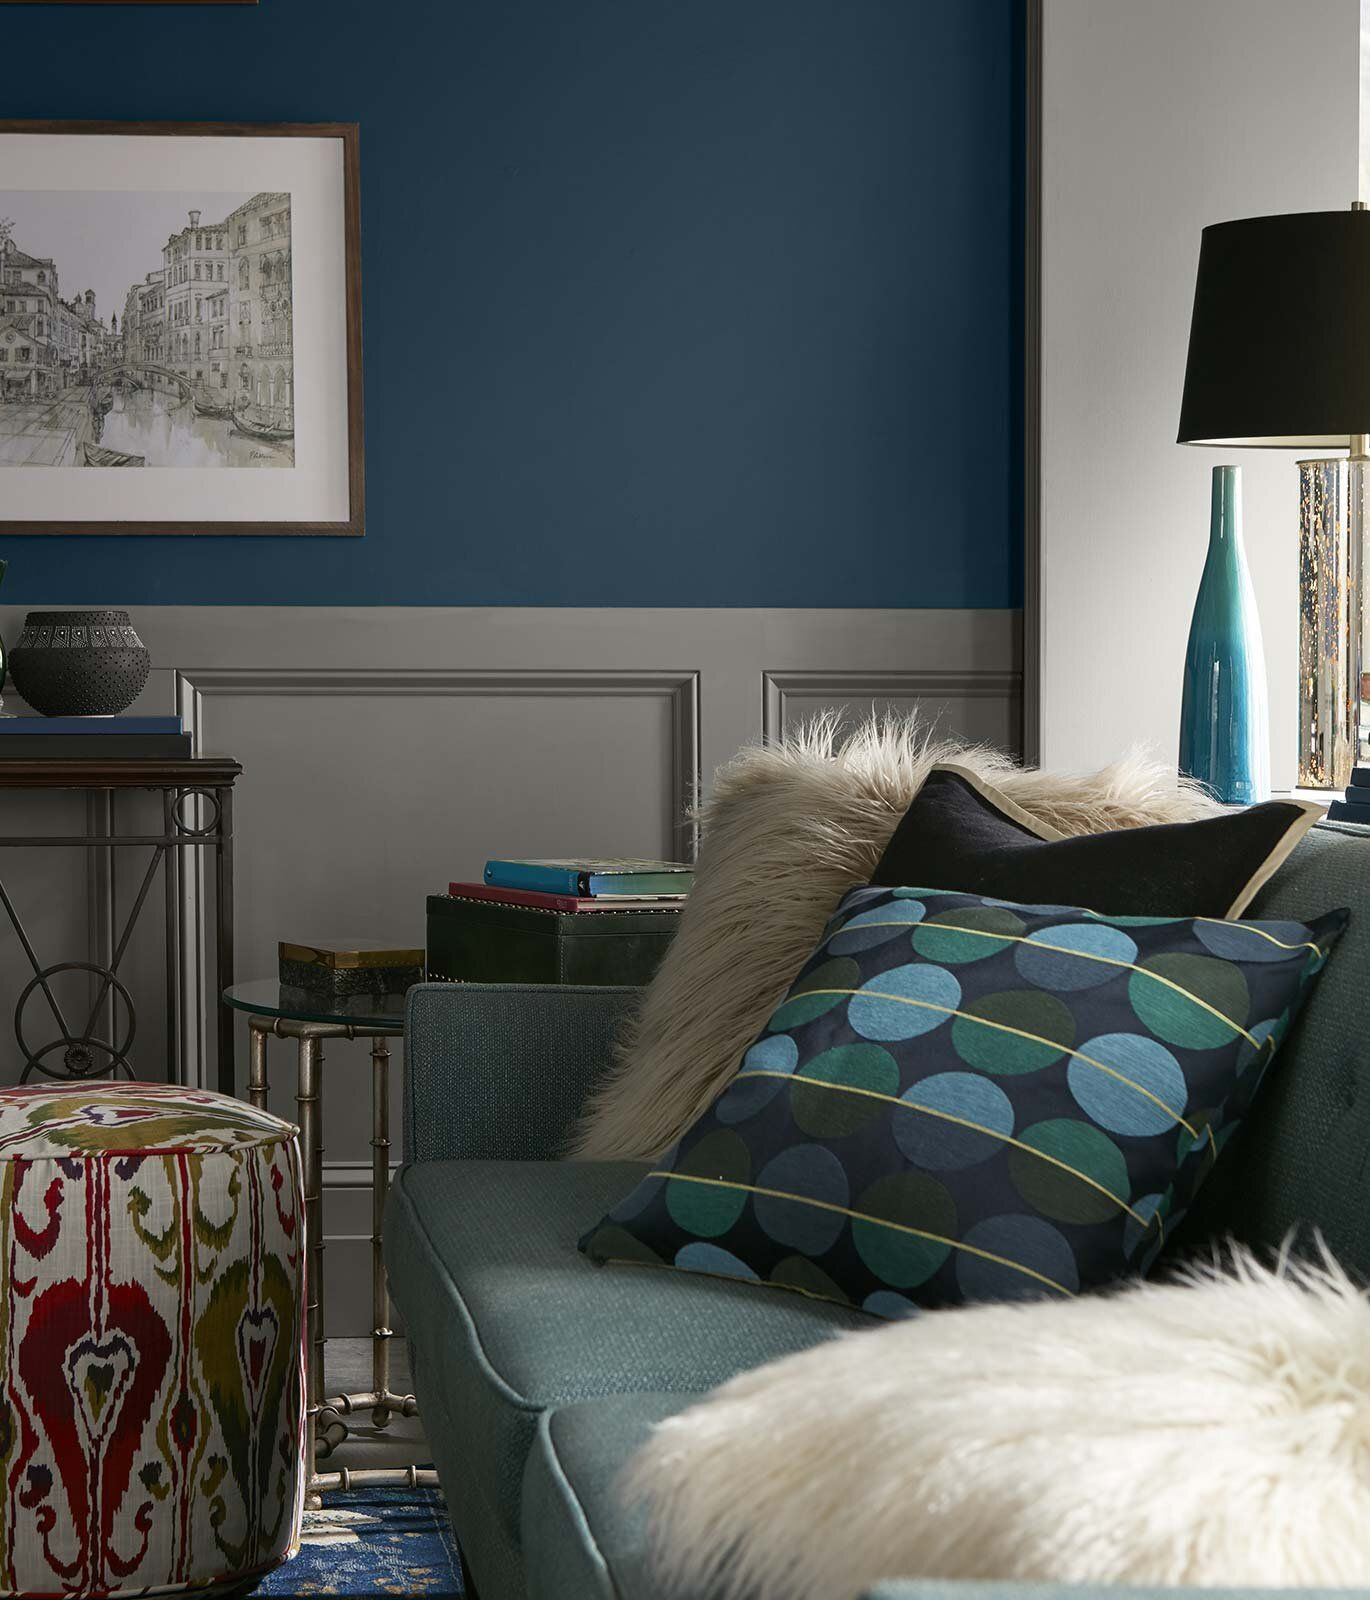 The Color Trends For 2021 Warm Comforting Hues And Bright Color Pops — THE NORDROOM   Trending ...